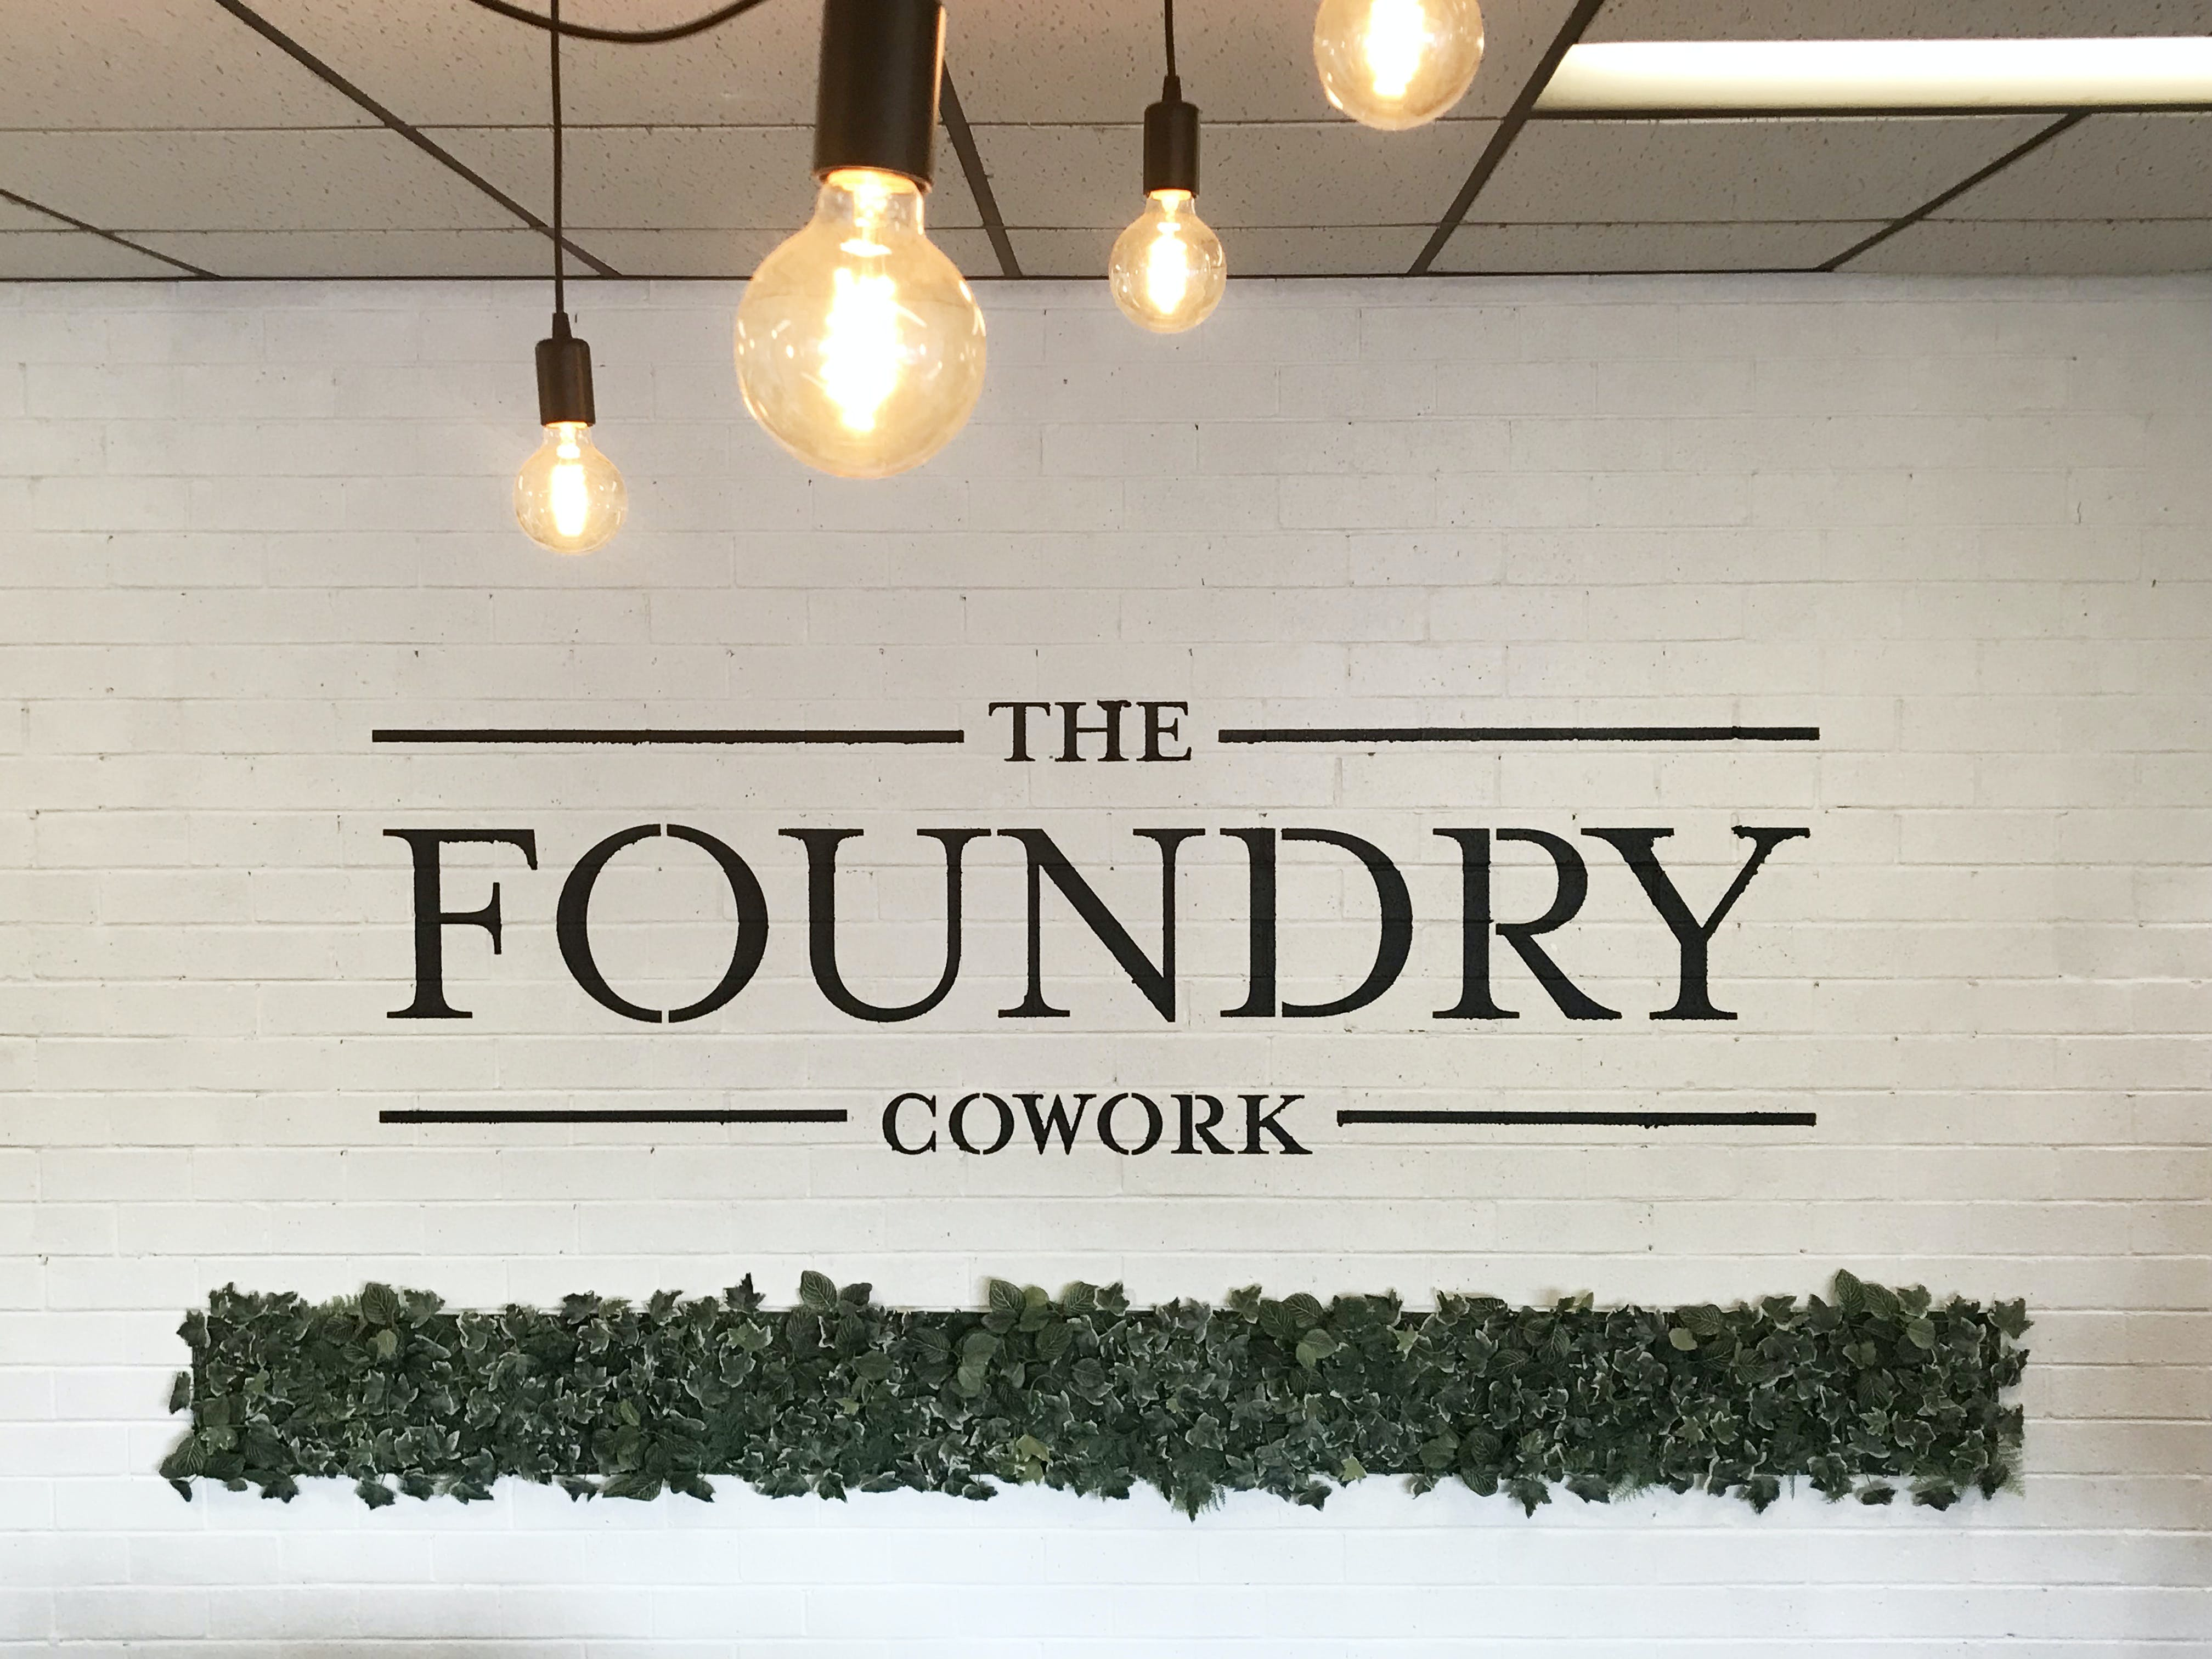 Coworking at The Foundry Cowork, image 1